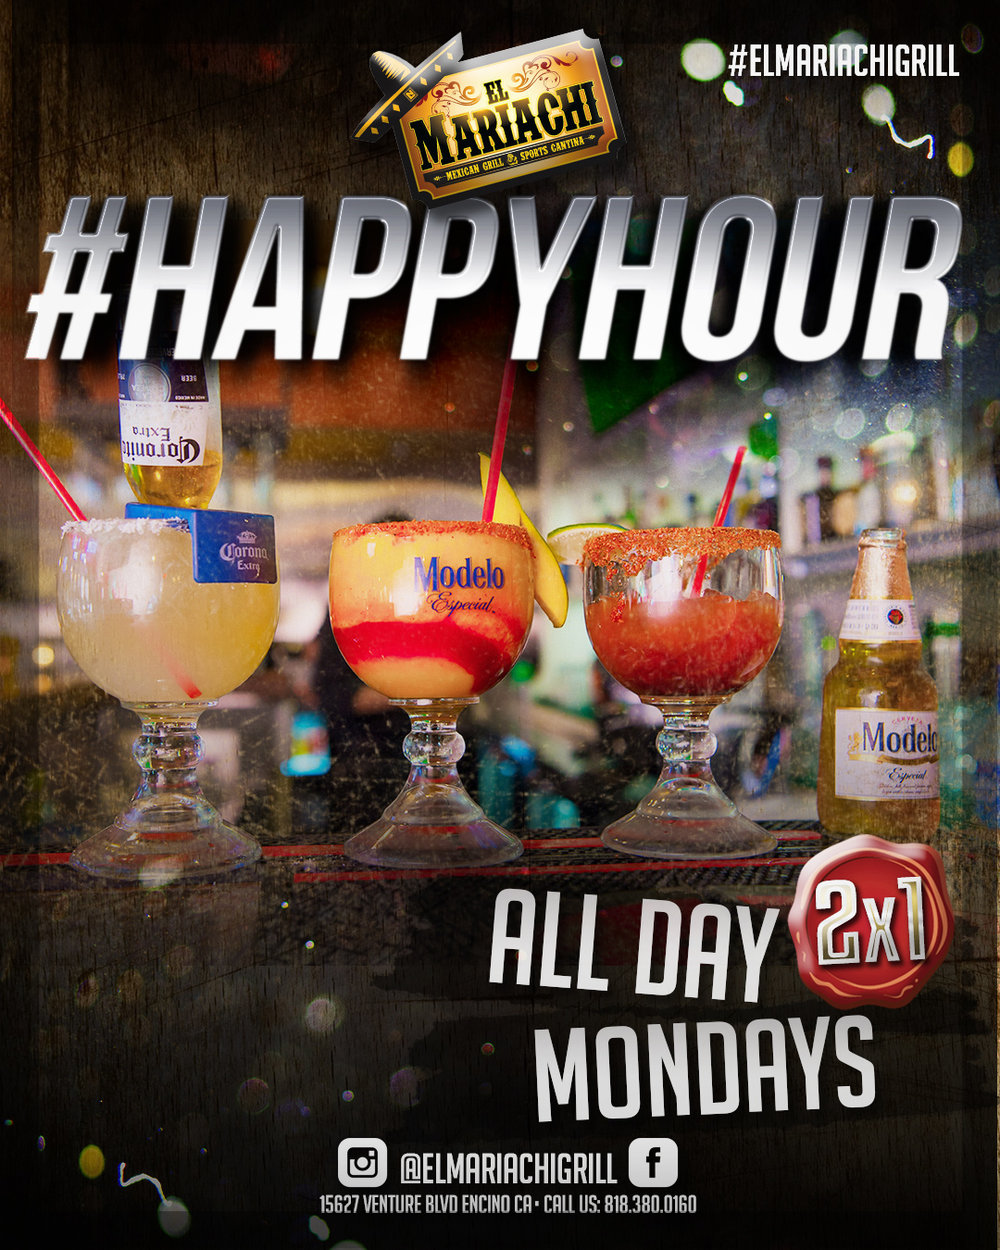 MONDAYS - All day! 2x1 at the bar. Draft, mix drinks, shots or just a simple beer! #Happyhour